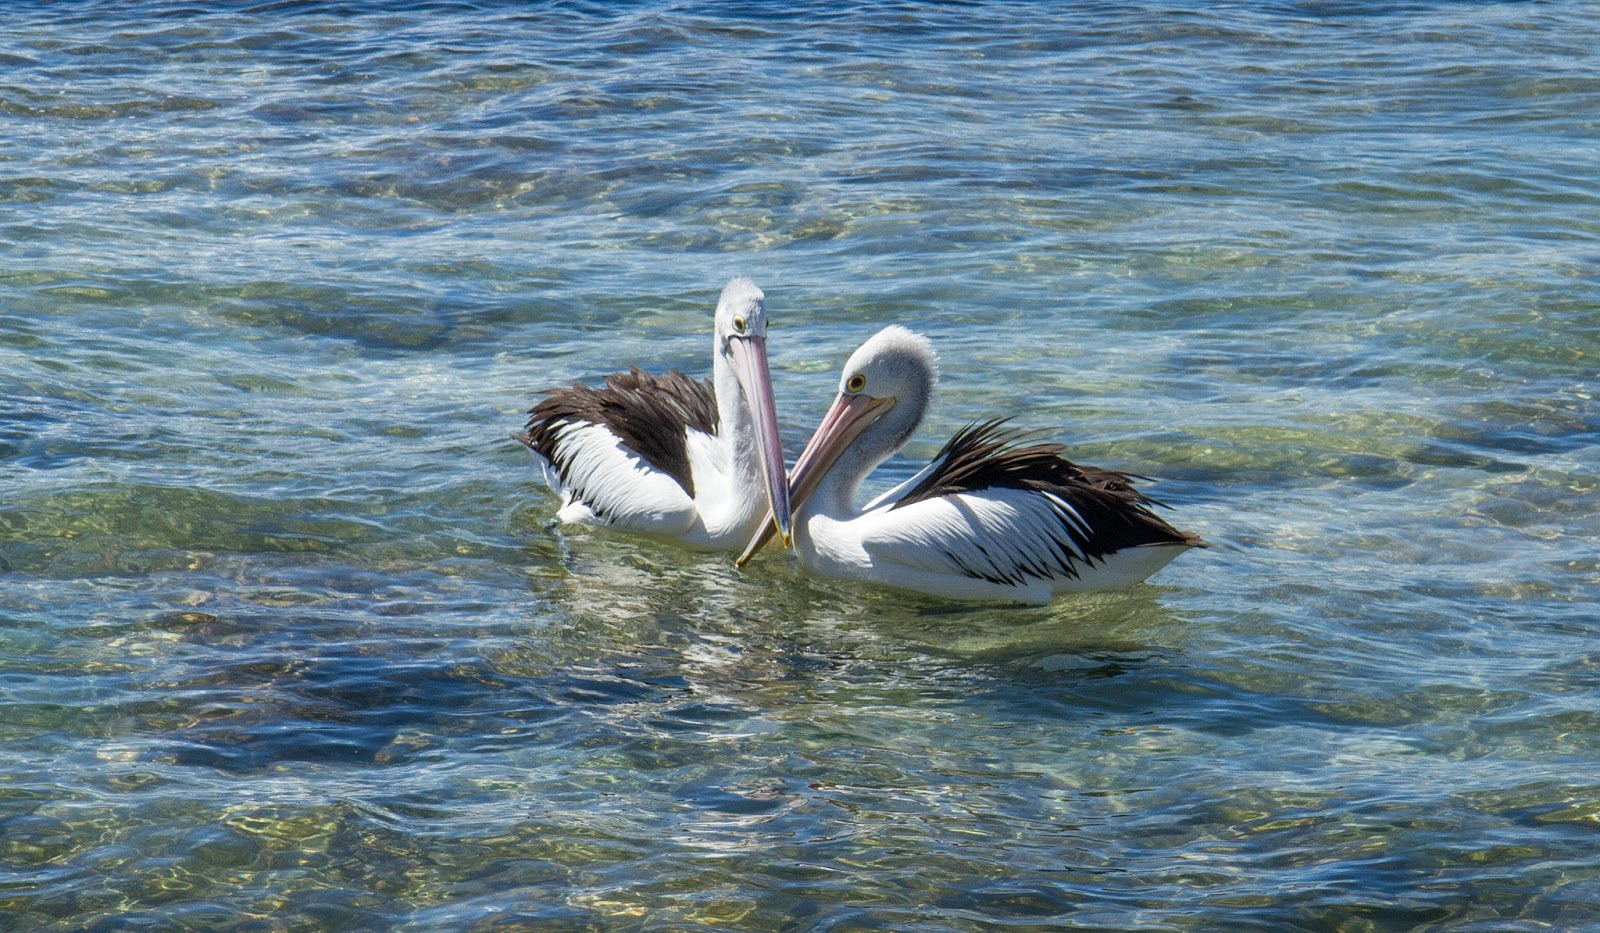 Pelicans at the Entrance, Australia